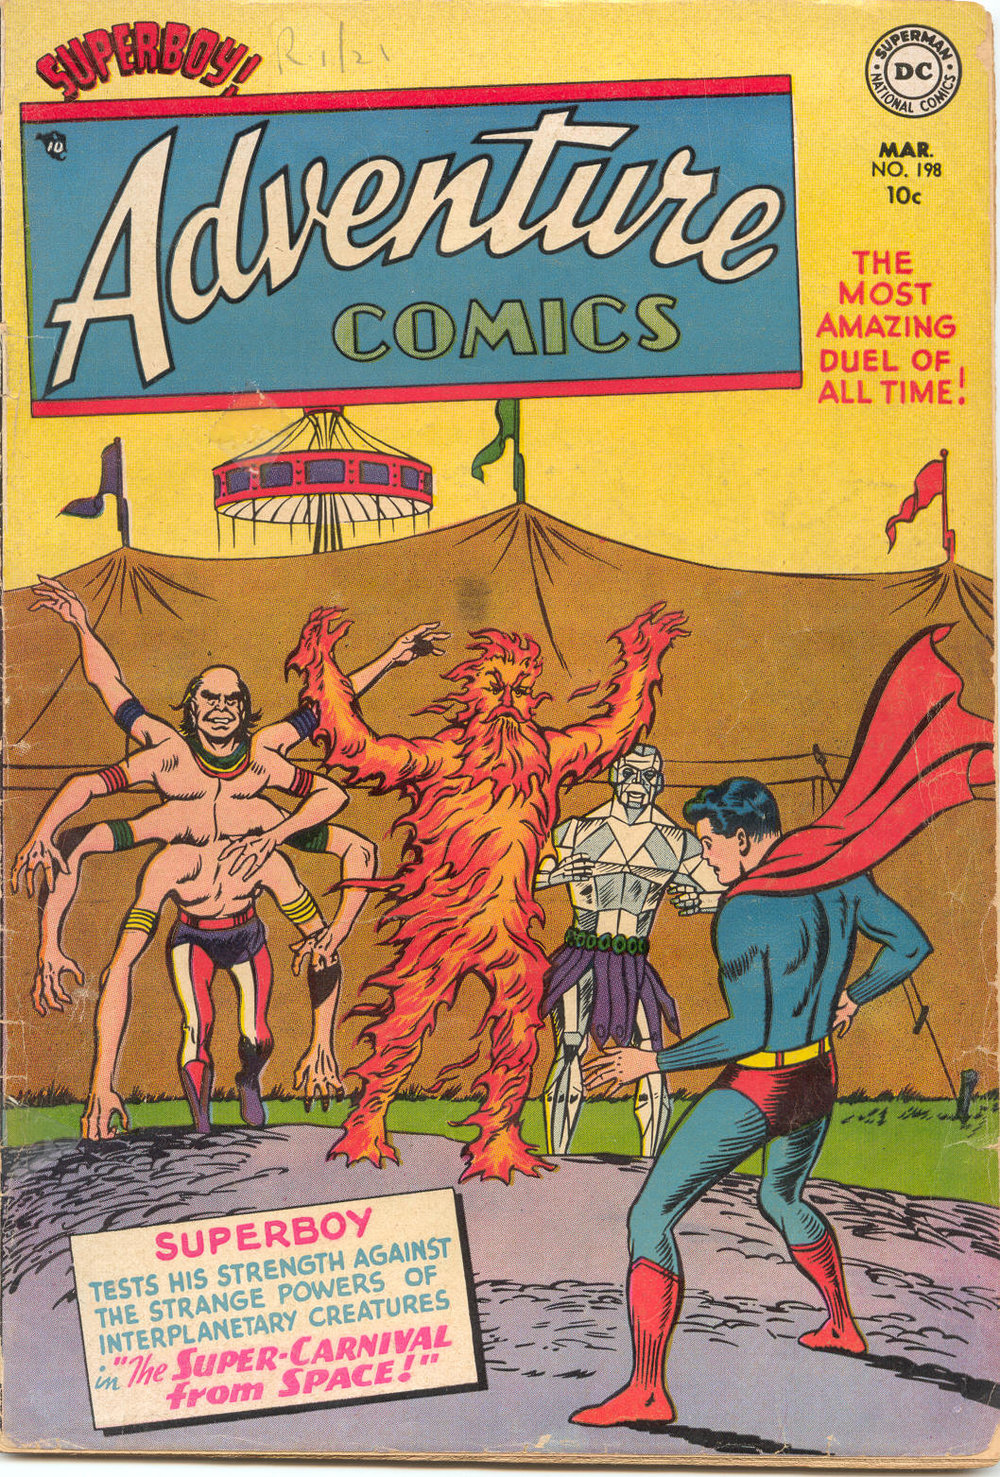 Adventure Comics (1938) #198, cover penciled by Curt Swan & inked by Sy Barry.